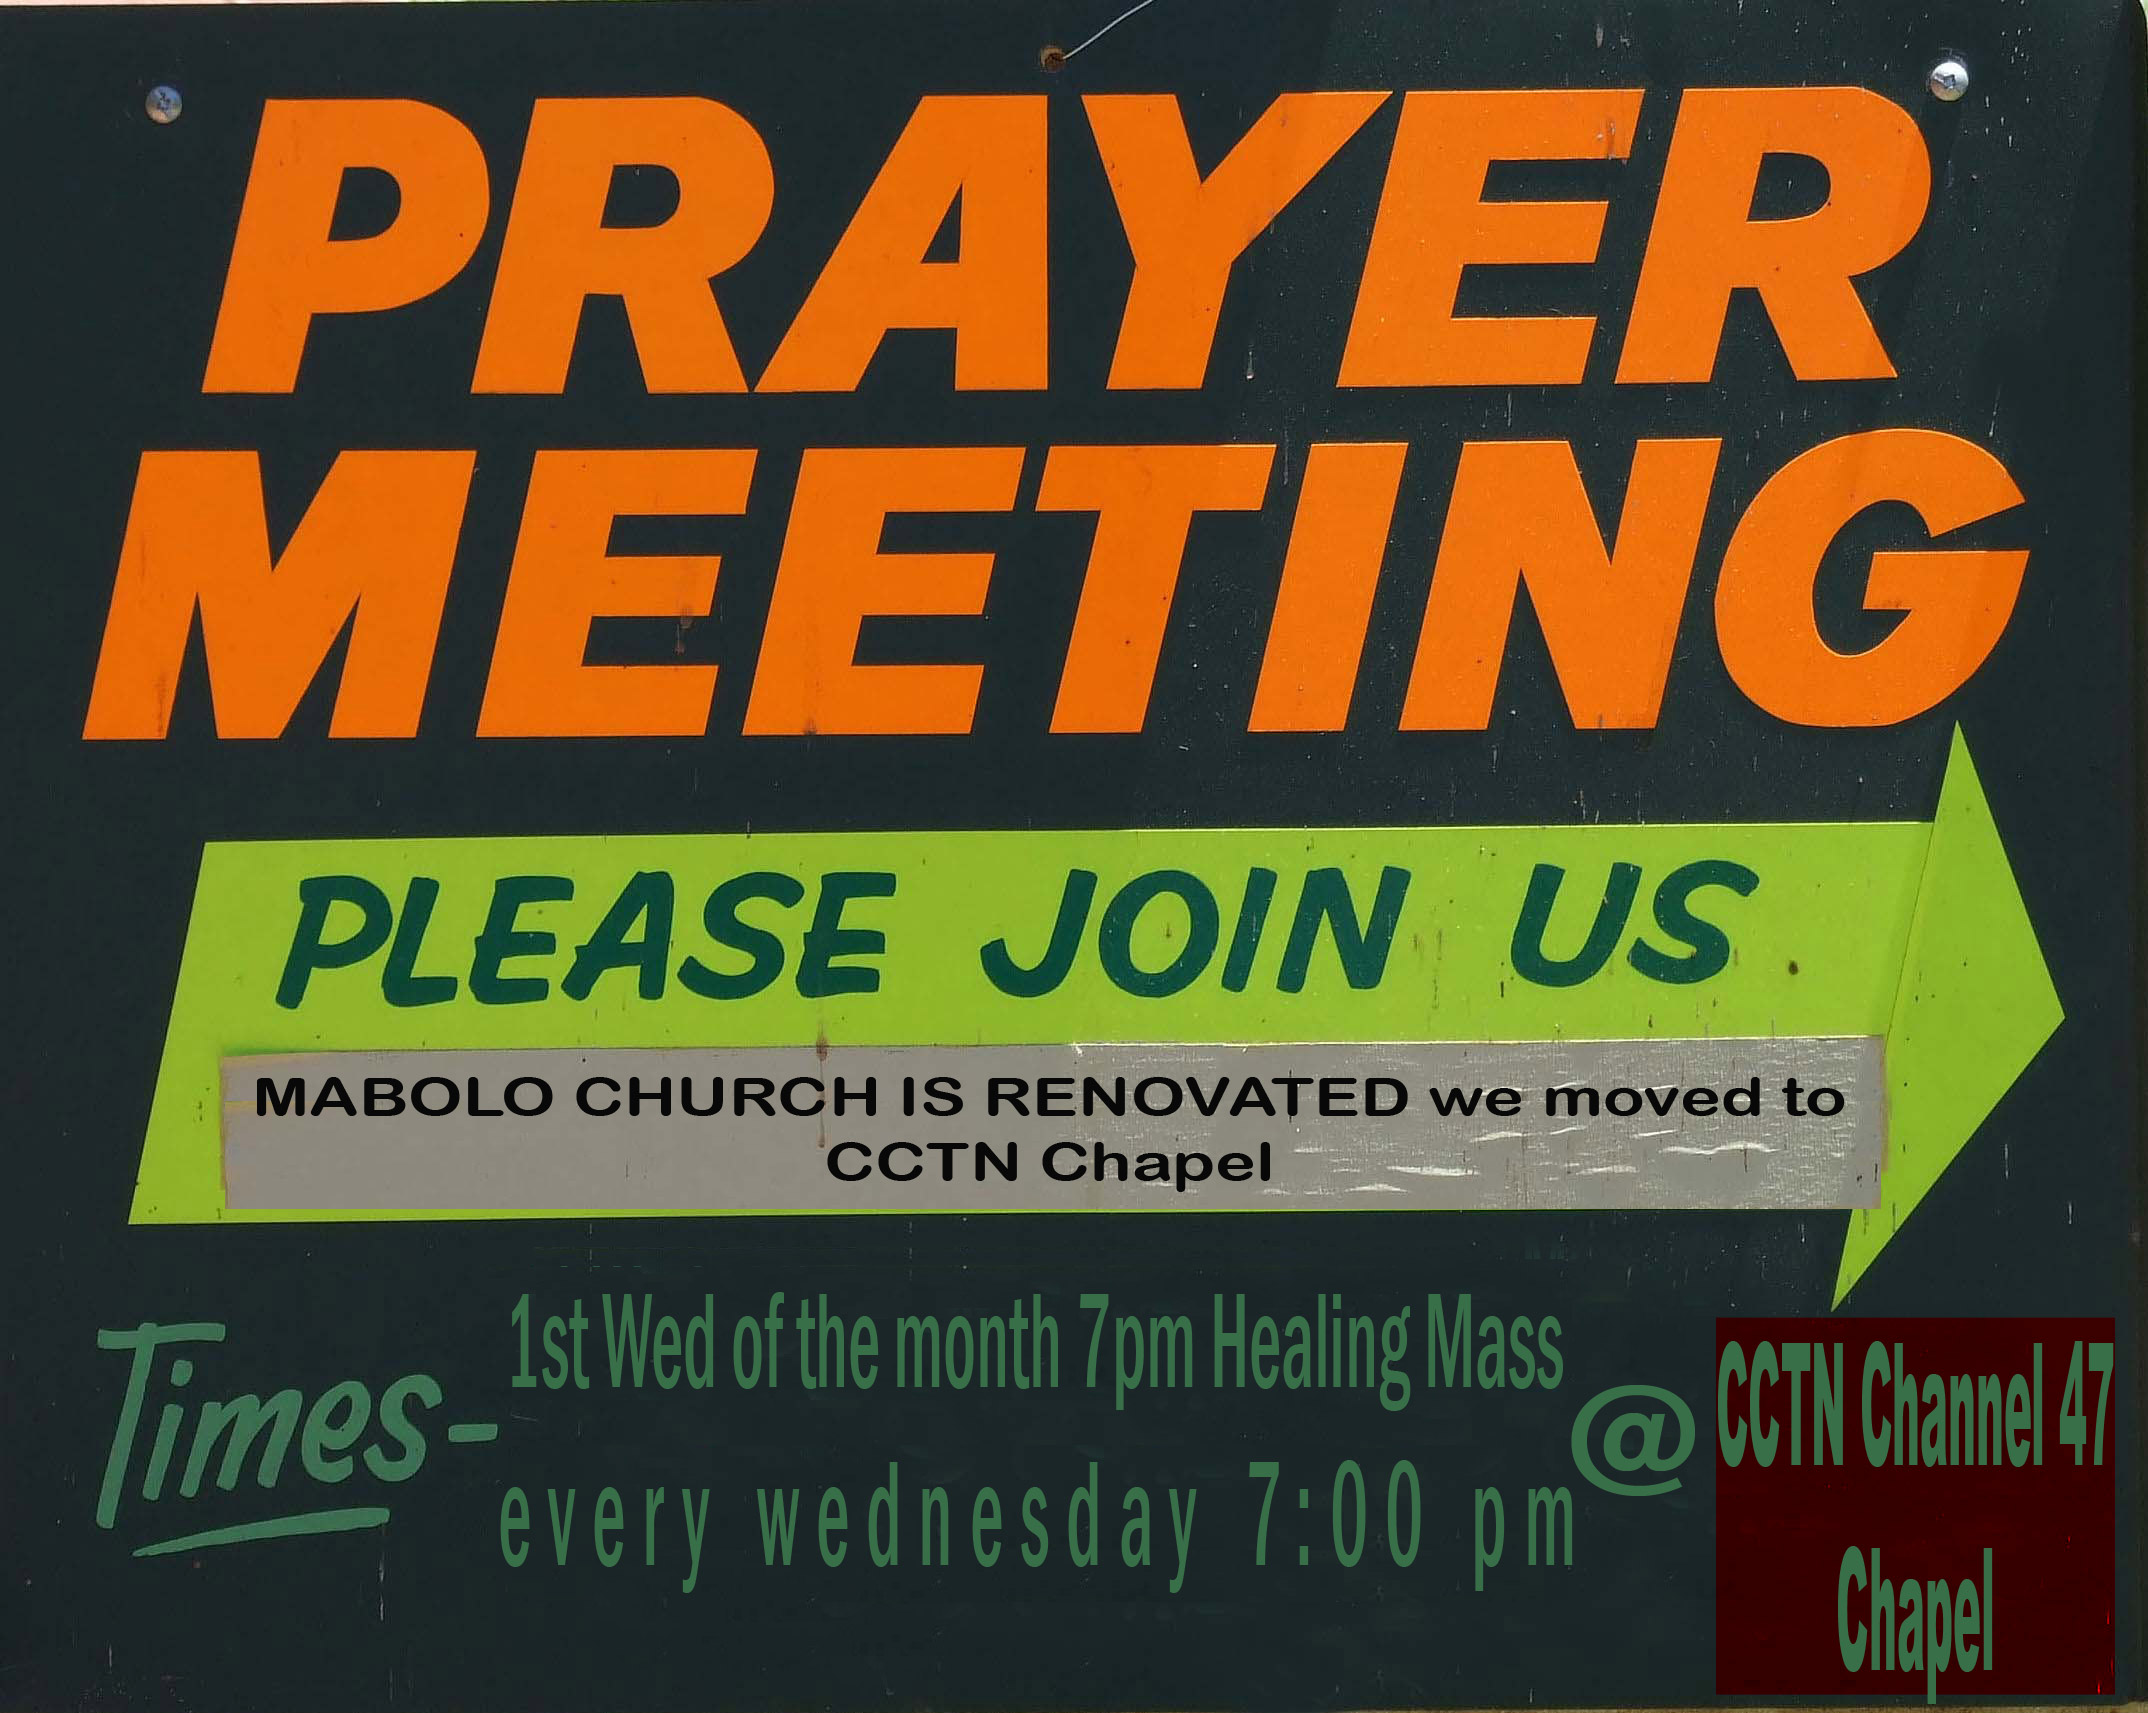 Oasis_of_Love_Cebu_Prayer_Meeting_Schedule